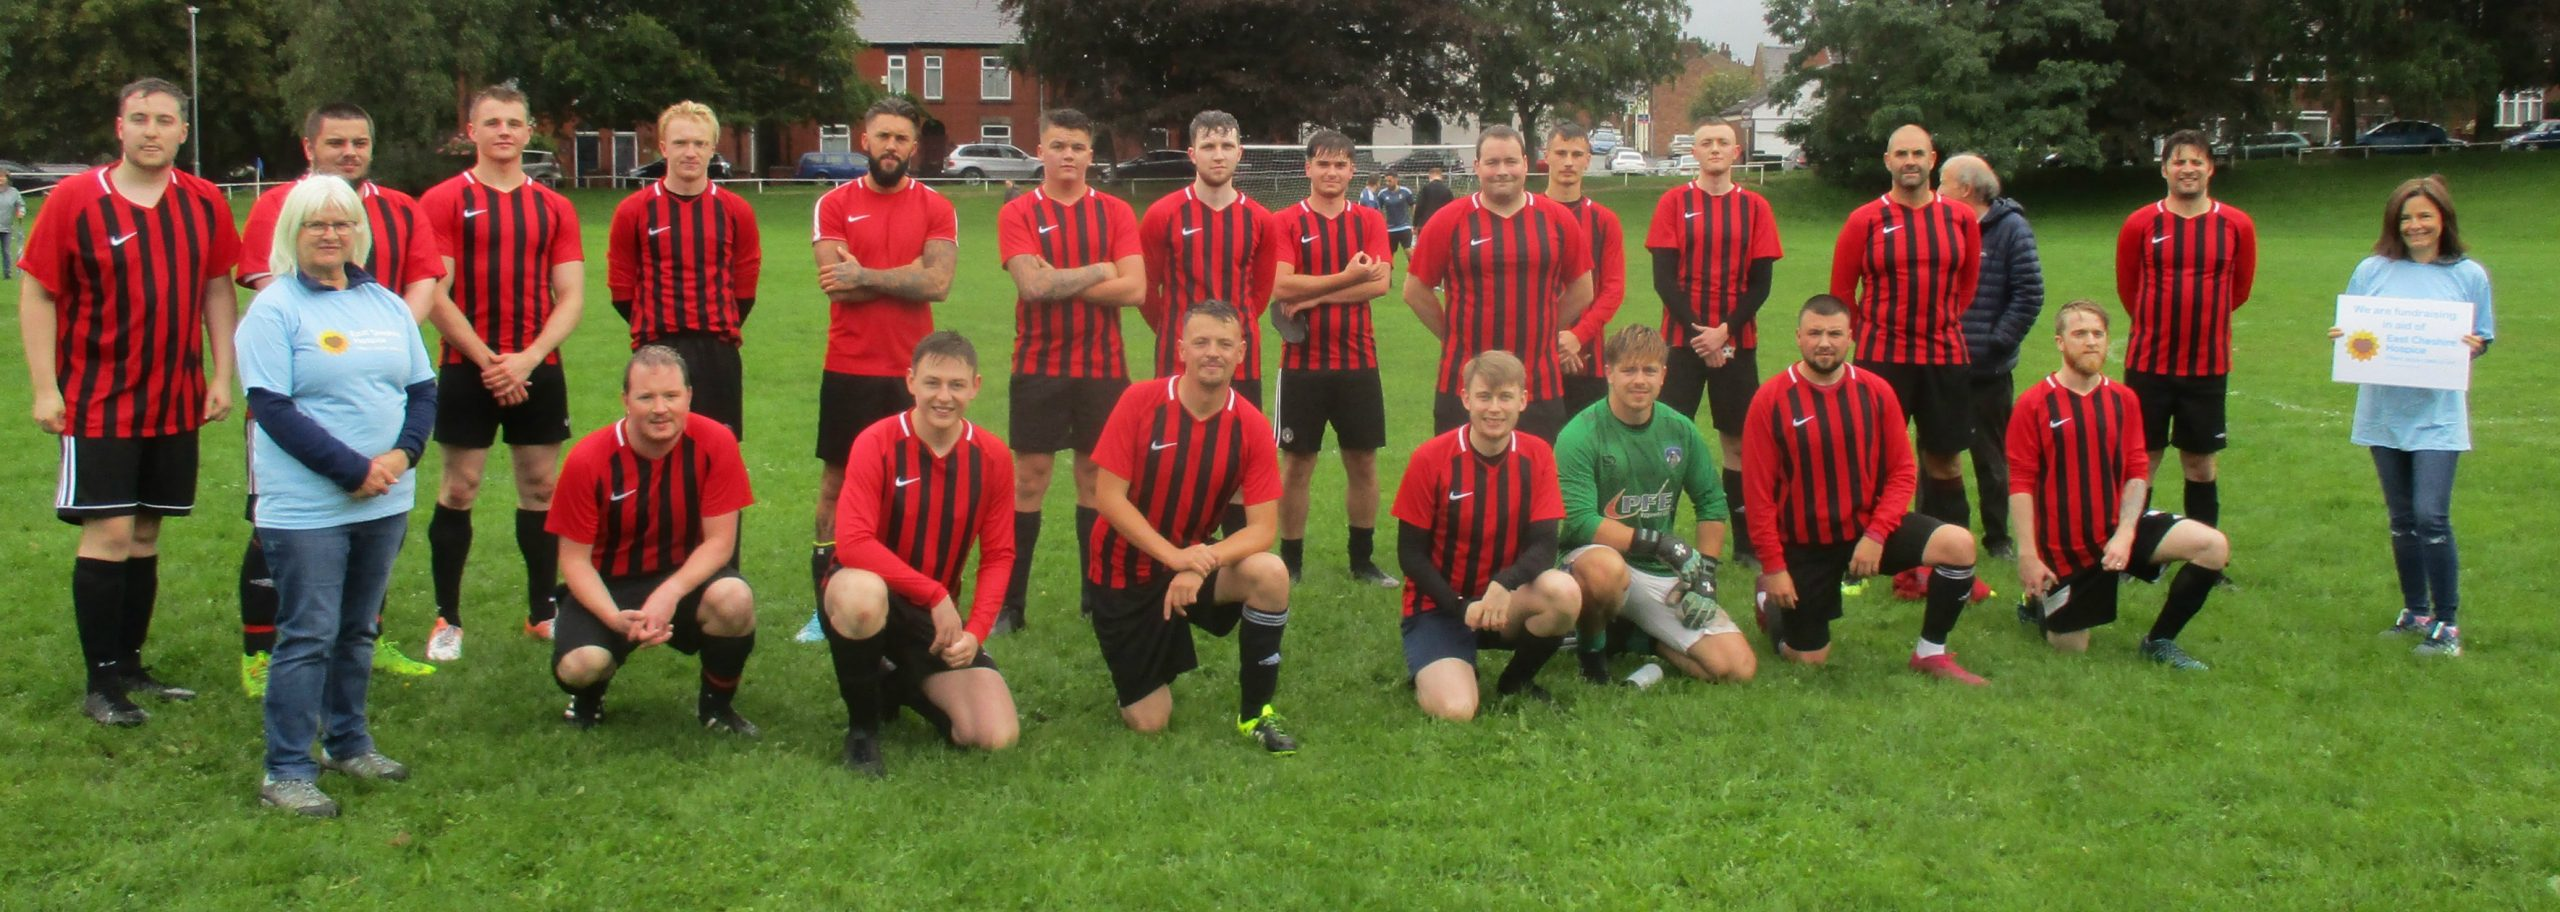 Football Match In Memory of Col Smith